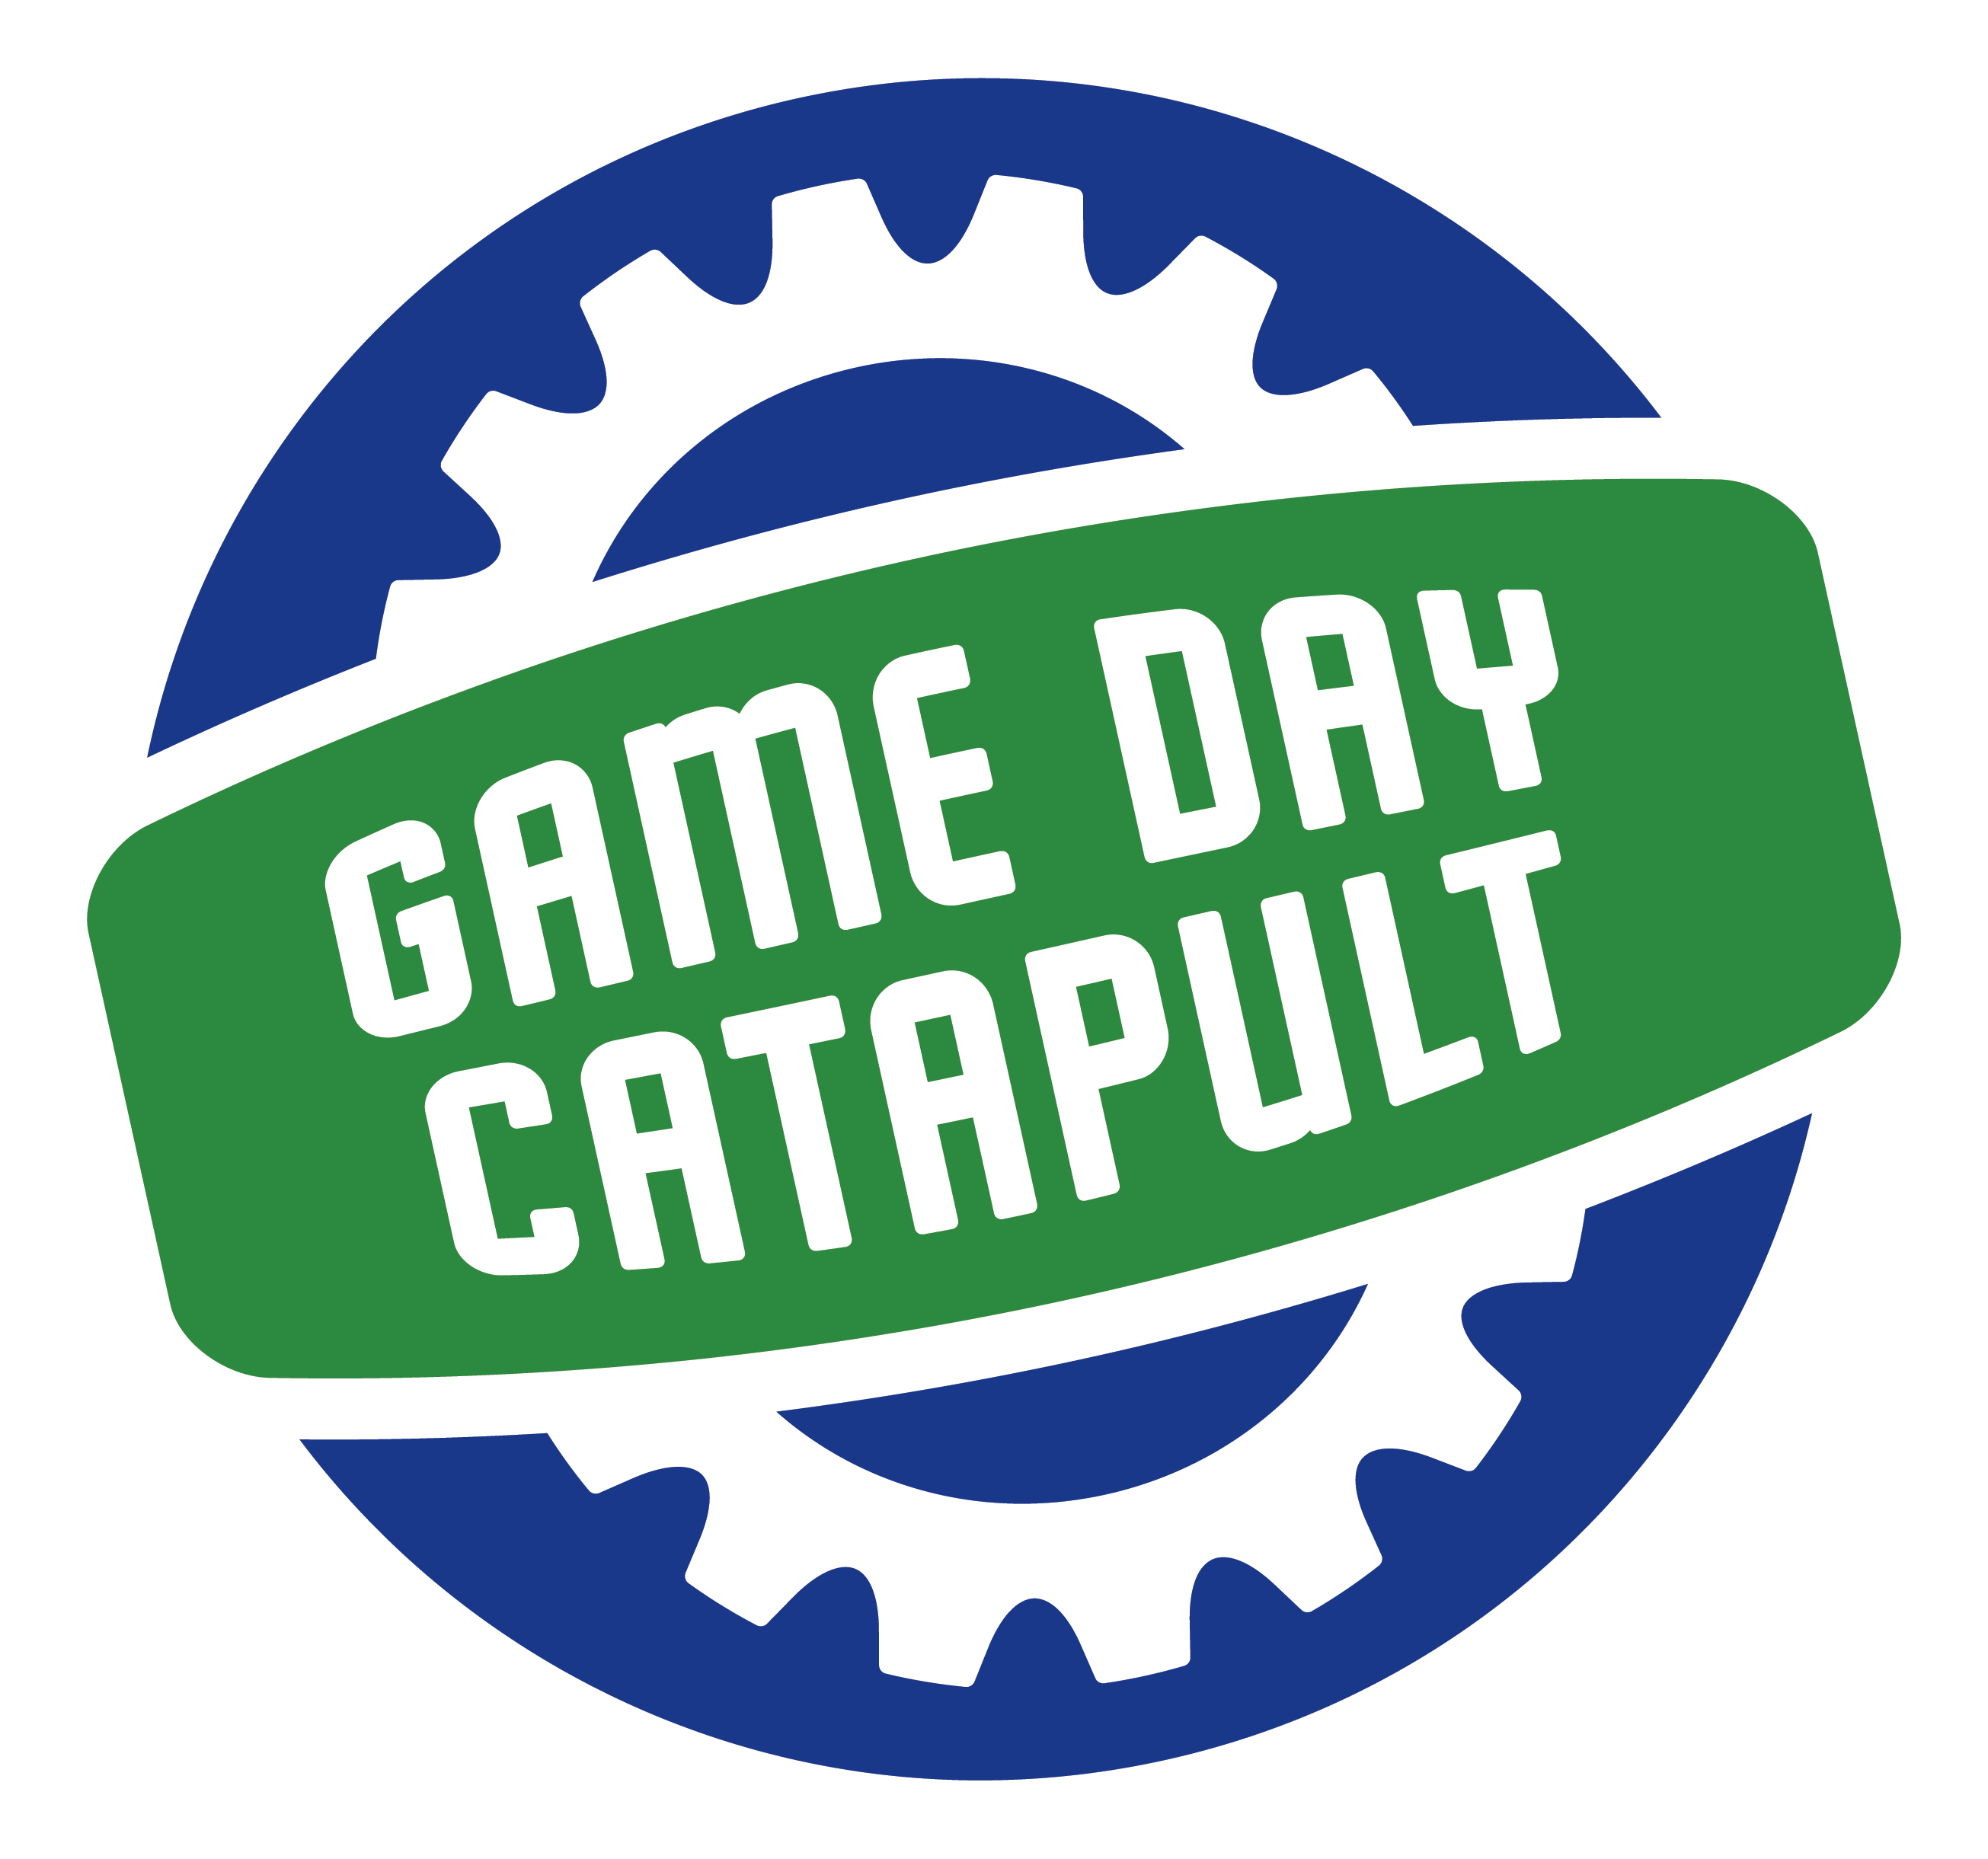 green catapult experiment logo